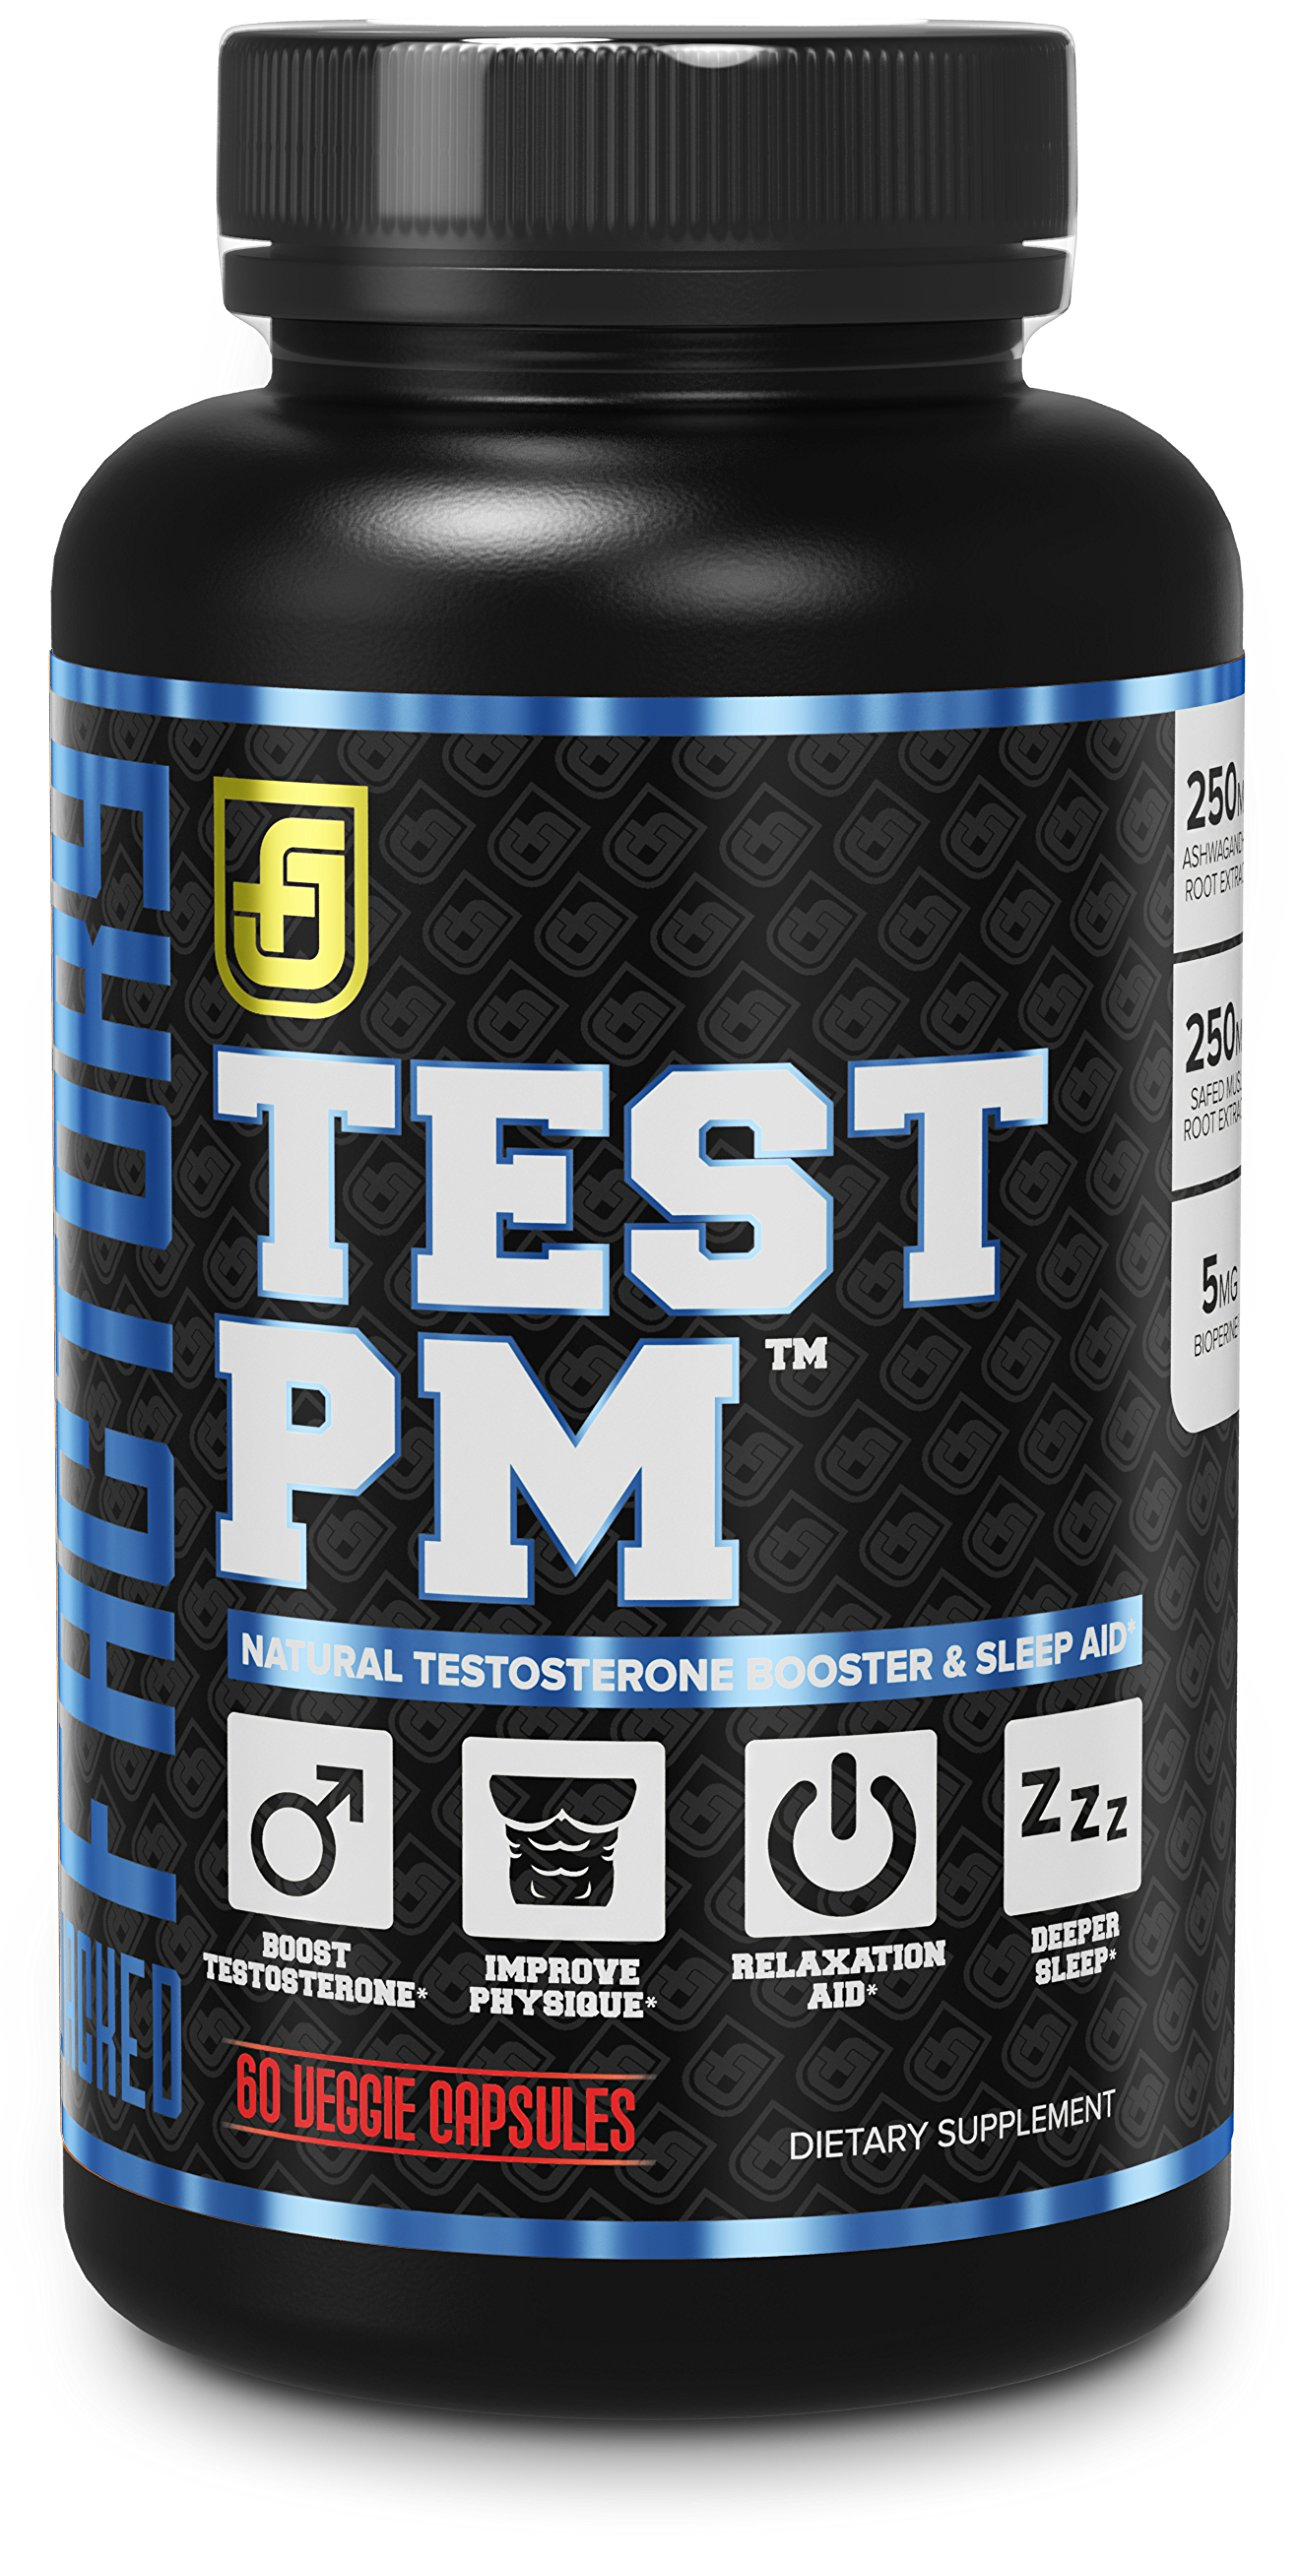 TEST PM Night Time Testosterone Booster and Sleep Aid Supplement for Men | Premium 5:1 Ashwagandha Root, L-Theanine, & More | 60 Natural Veggie Pills